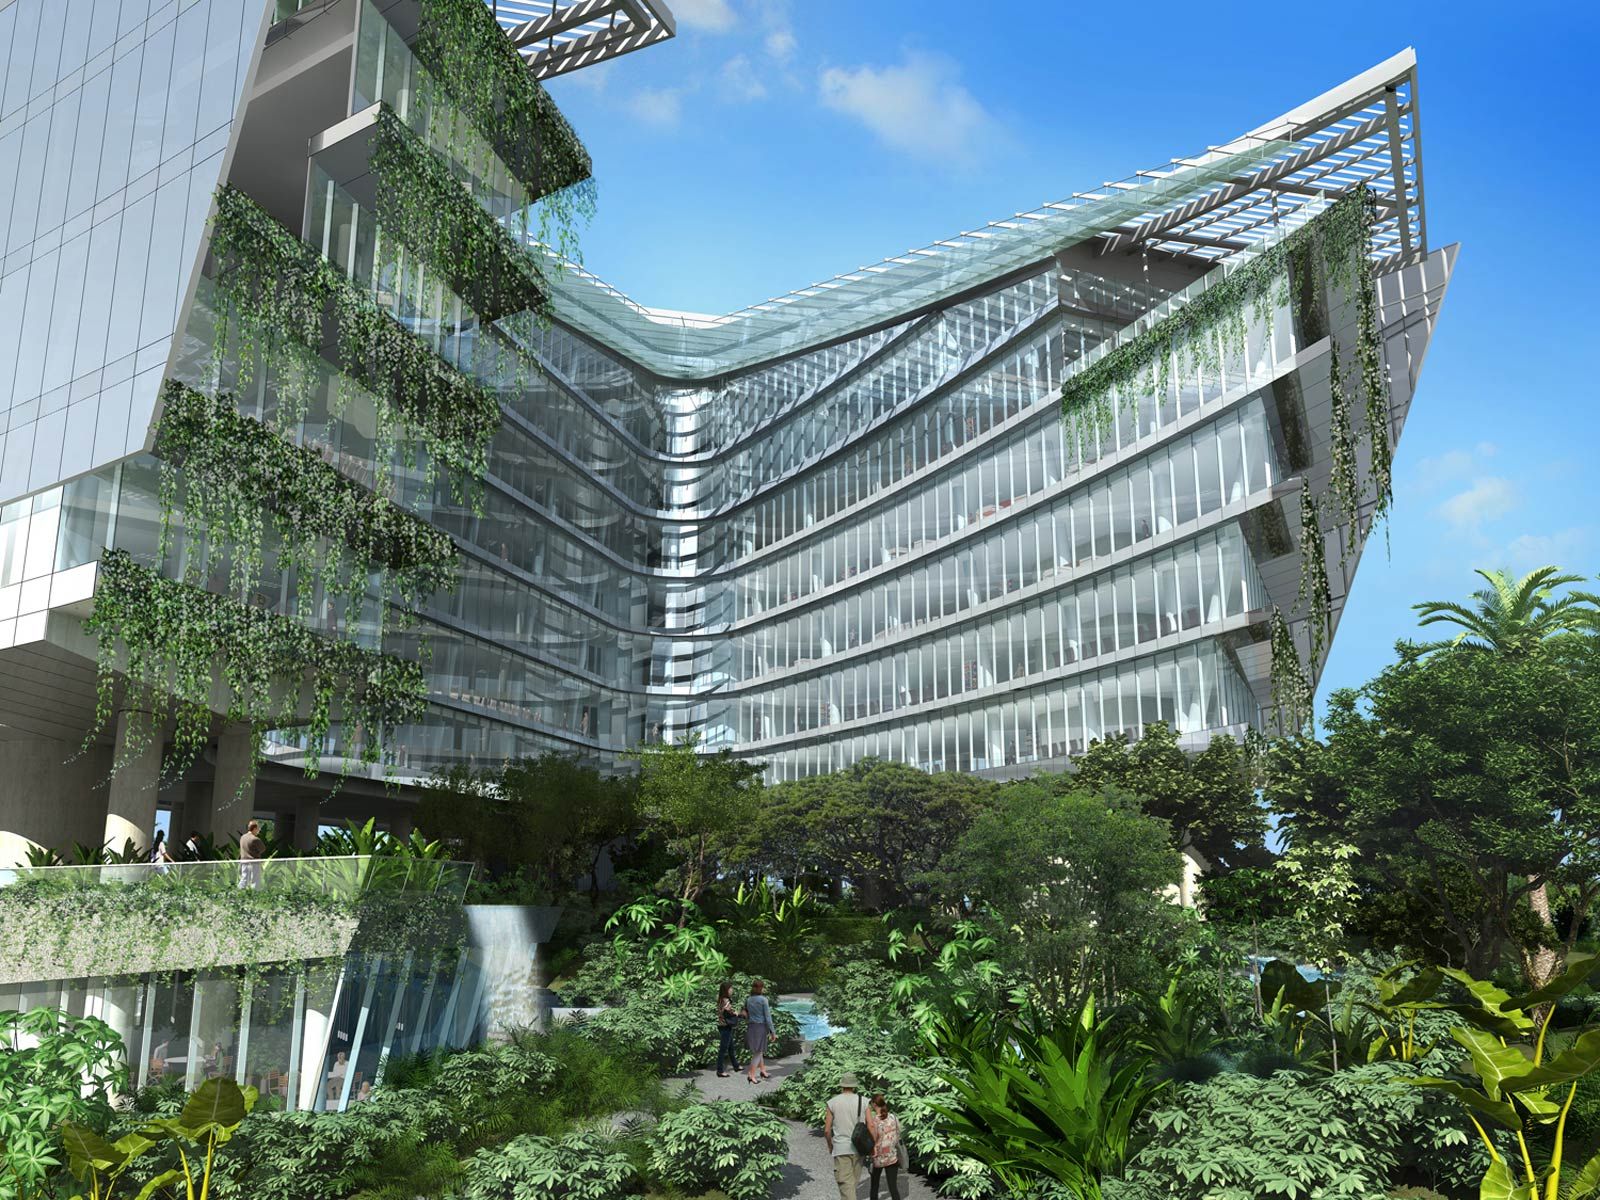 Singapore bca plans green building masterplan over next 5 years singapore bca plans green building masterplan over next 5 years sciox Choice Image